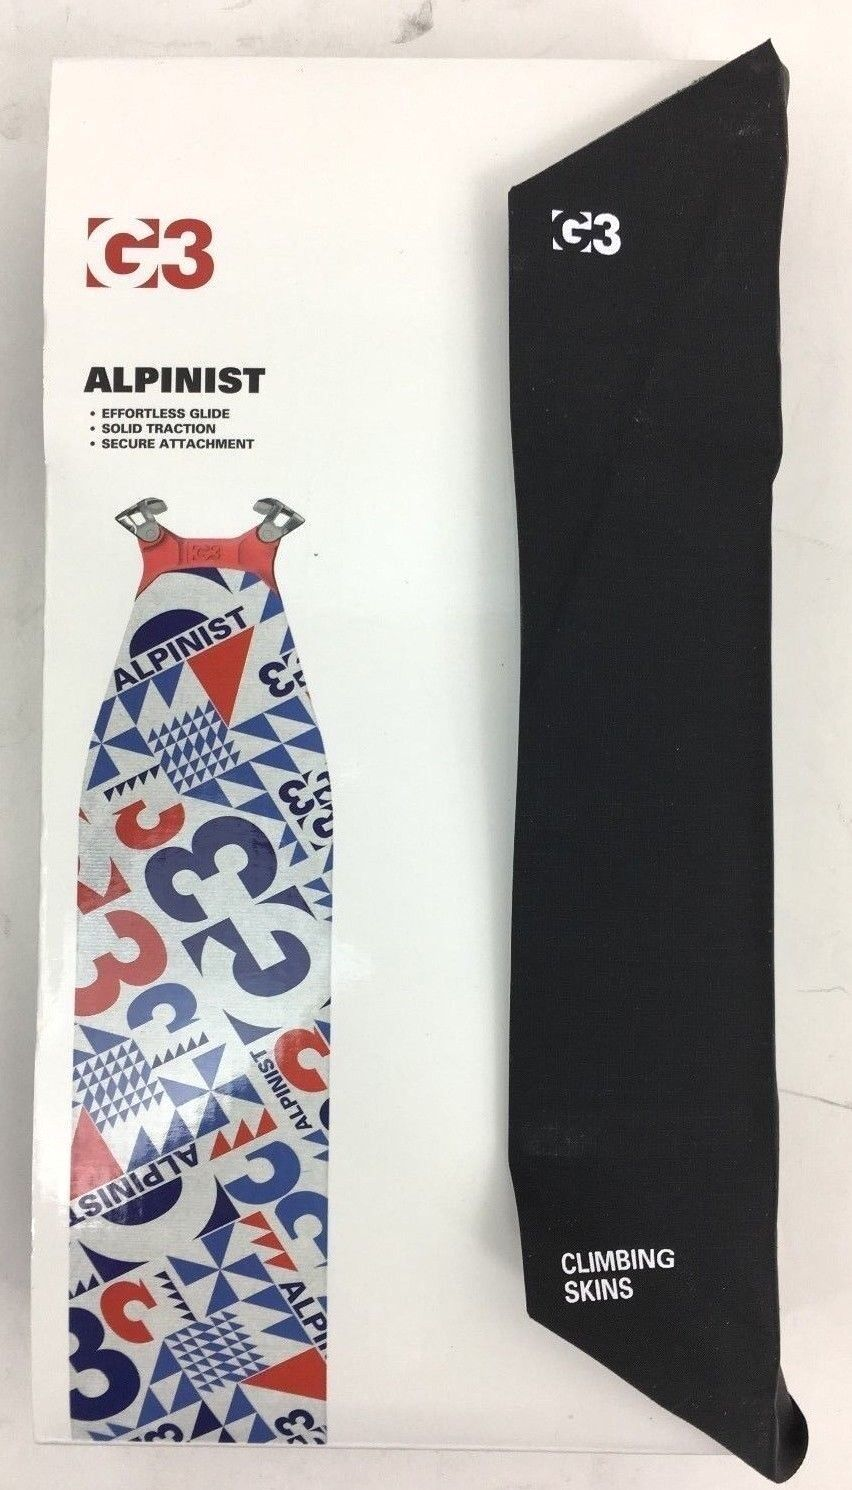 G3 ALPINIST SKI CLIMBING SKINS -- SIZES AVAILABLE --- BRAND NEW